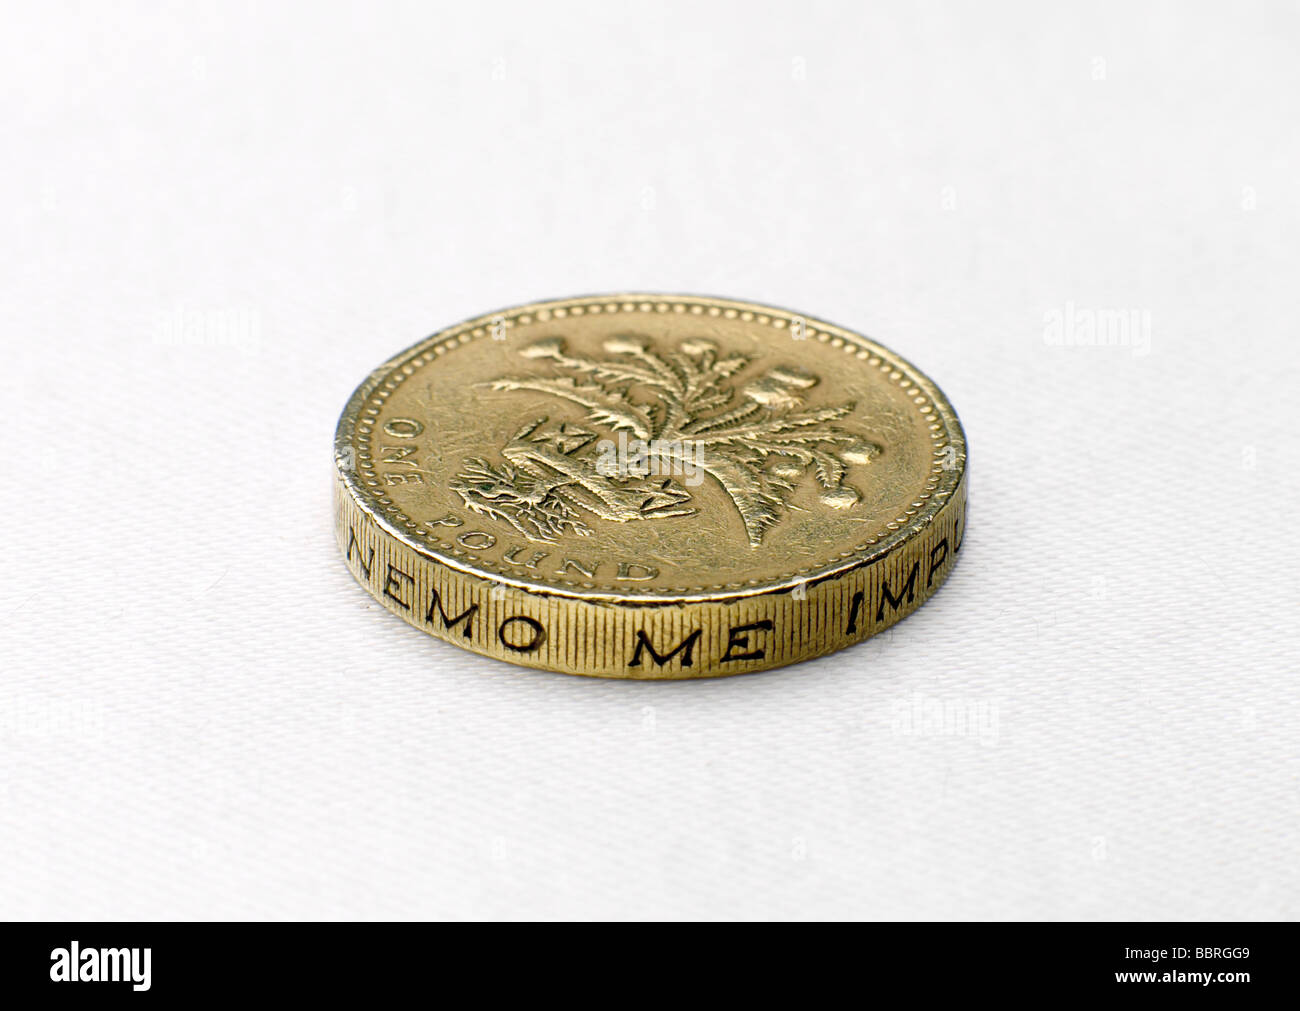 BRITISH POUND COIN TAILS - Stock Image